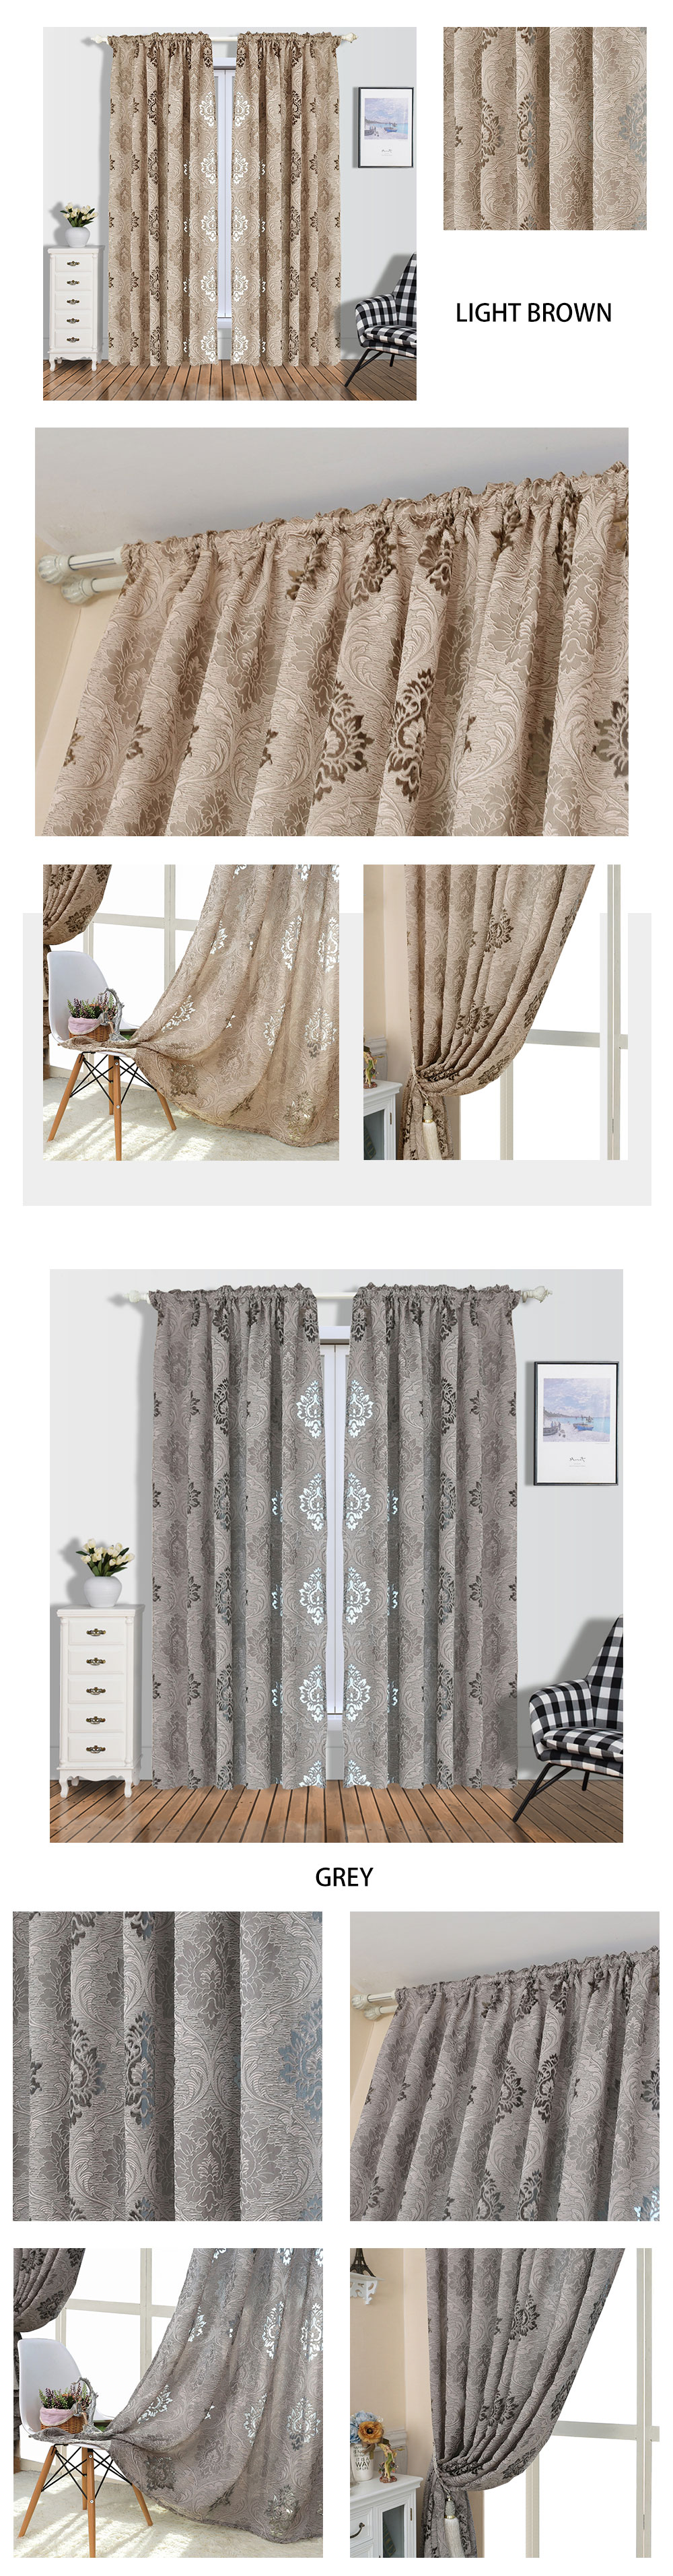 2 NAPEARL Window Panel Screening Floral Jacquard Semi-shades Curtains Free Shipping Brown for Bedroom Natural Ready Made Fabrics (1)